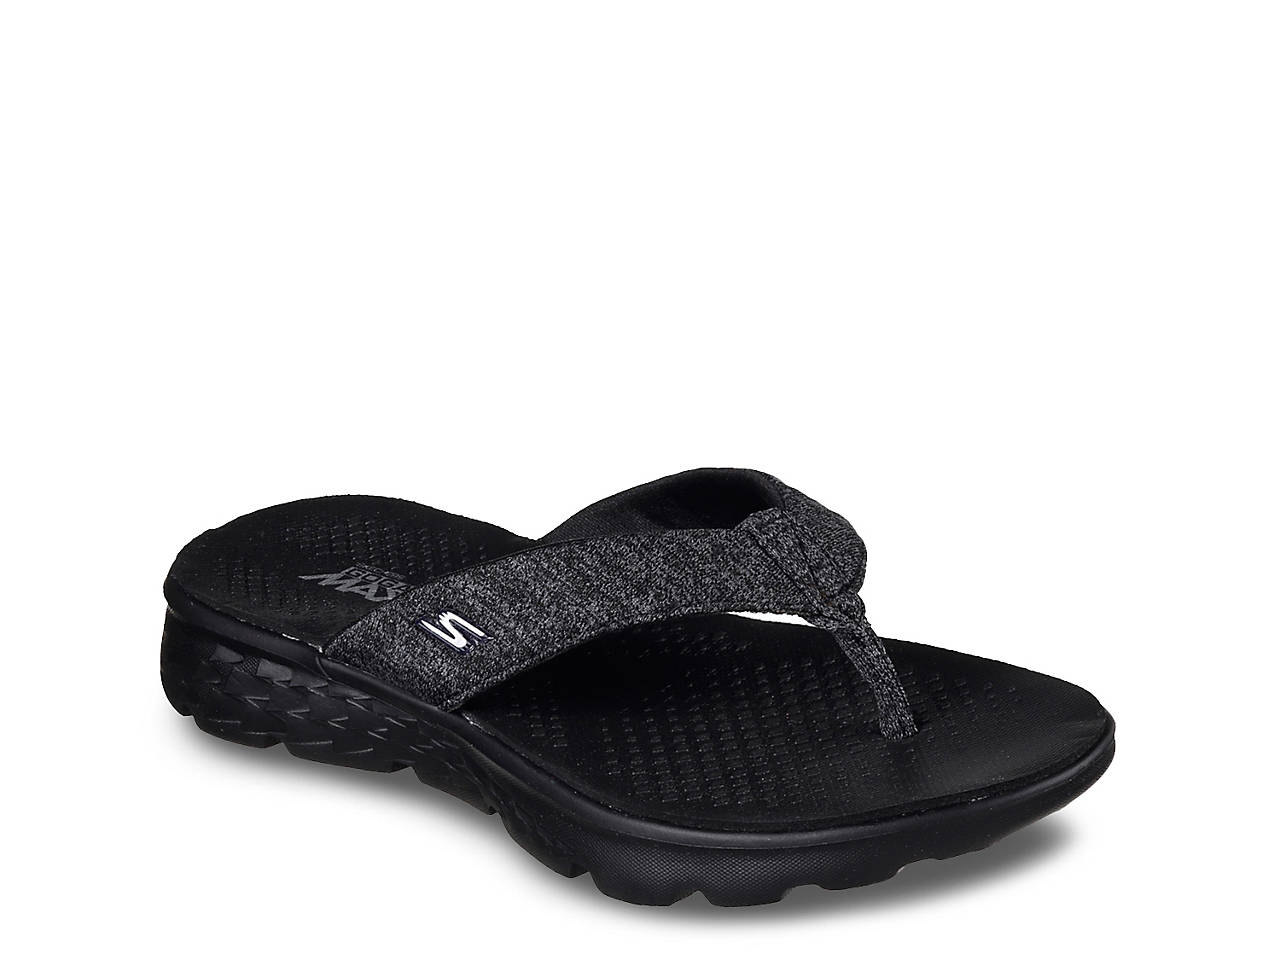 d484b807e247 Skechers On The Go Vivacity Flip Flop Women s Shoes